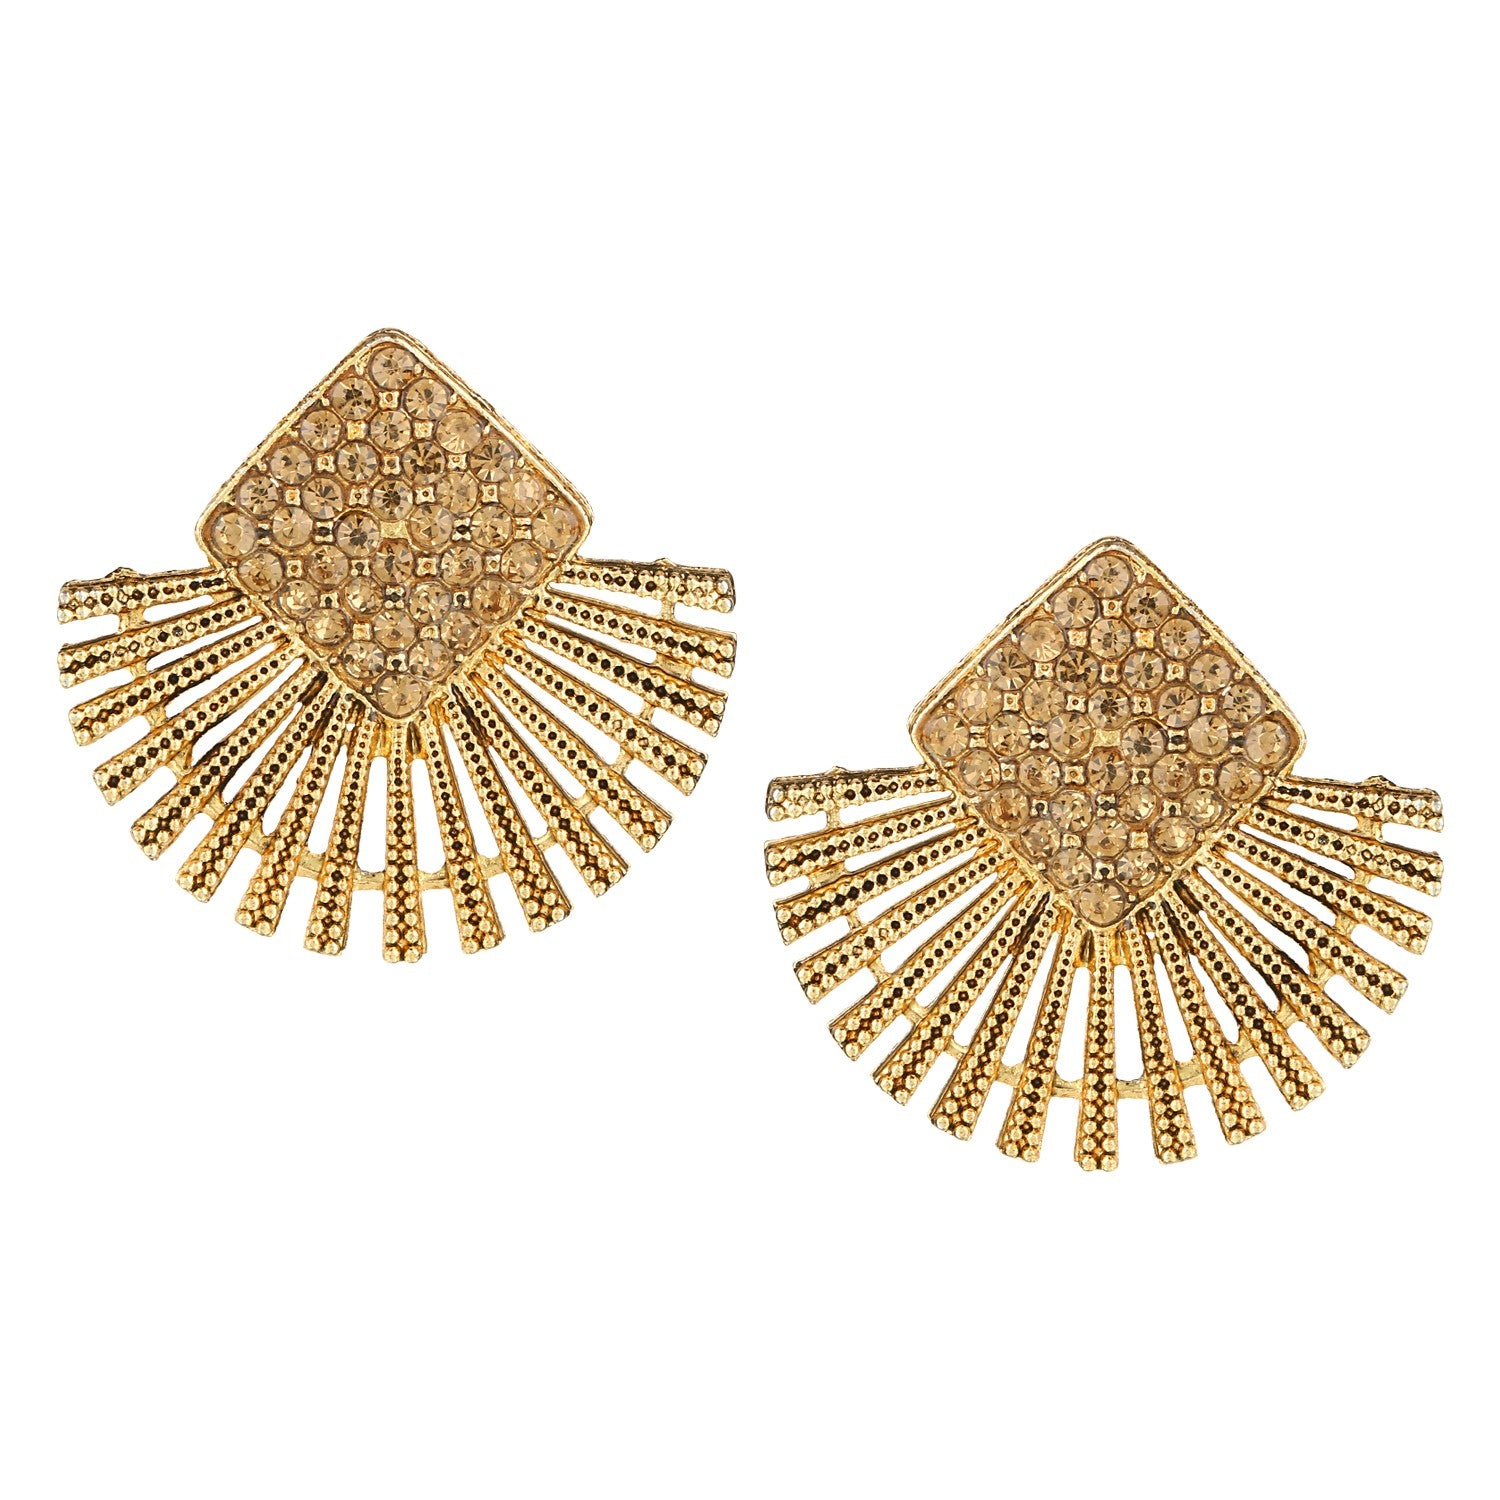 jewellery beautiful golden clear designer earrings indian products stud ao latest high collections buy online color quality